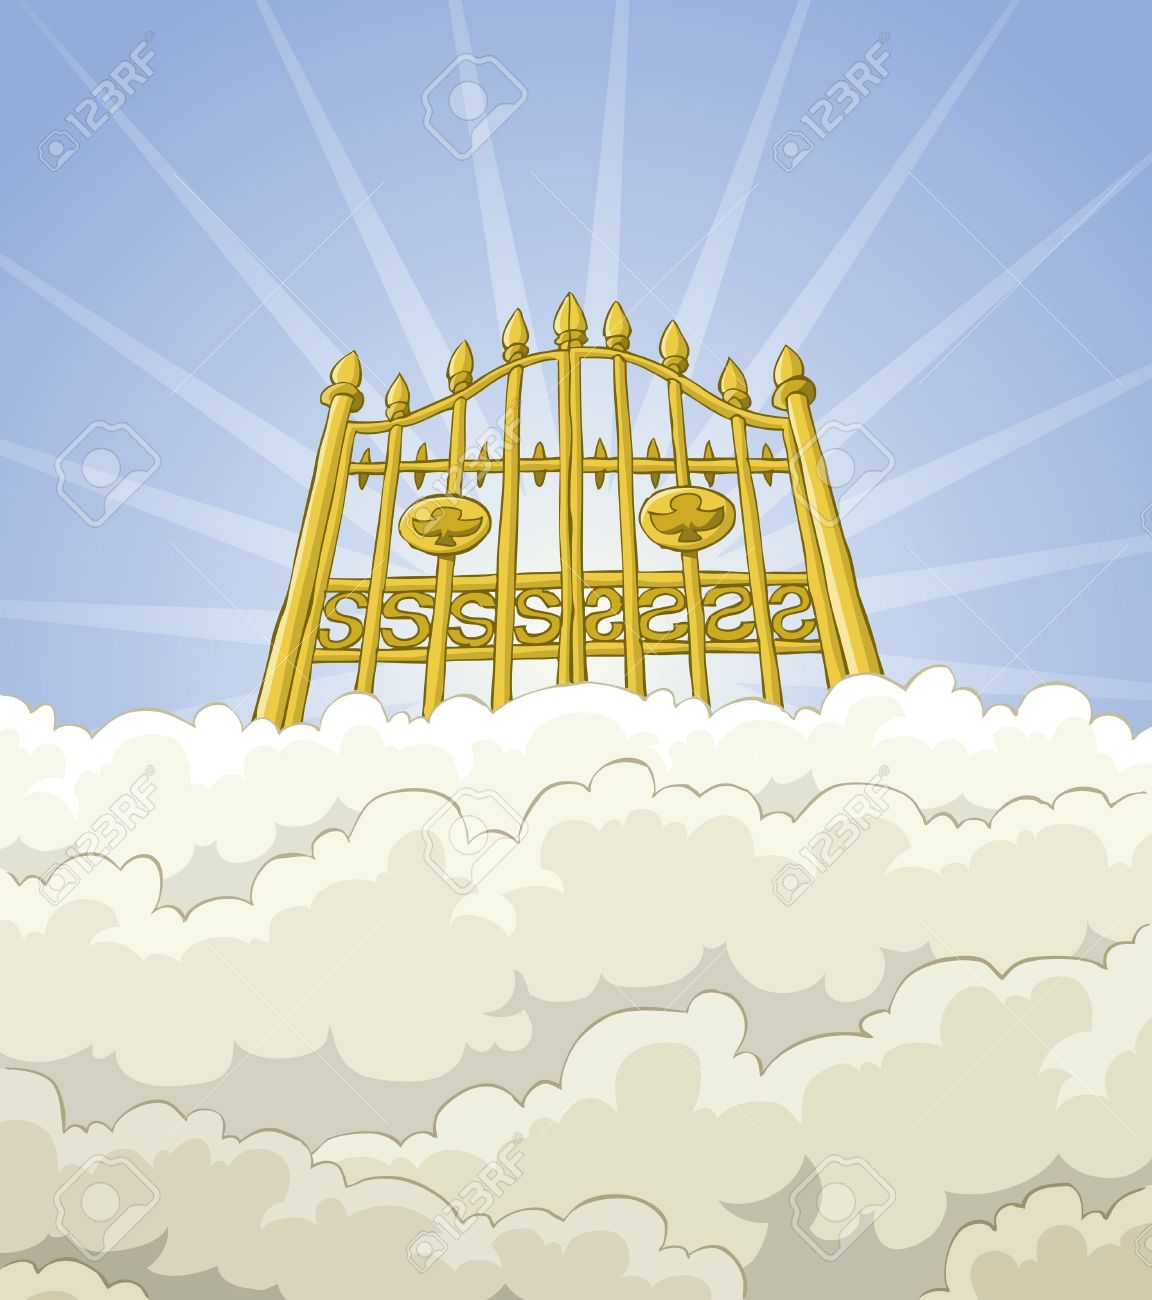 Heaven clipart mansion Rejection Pearls of heavens How